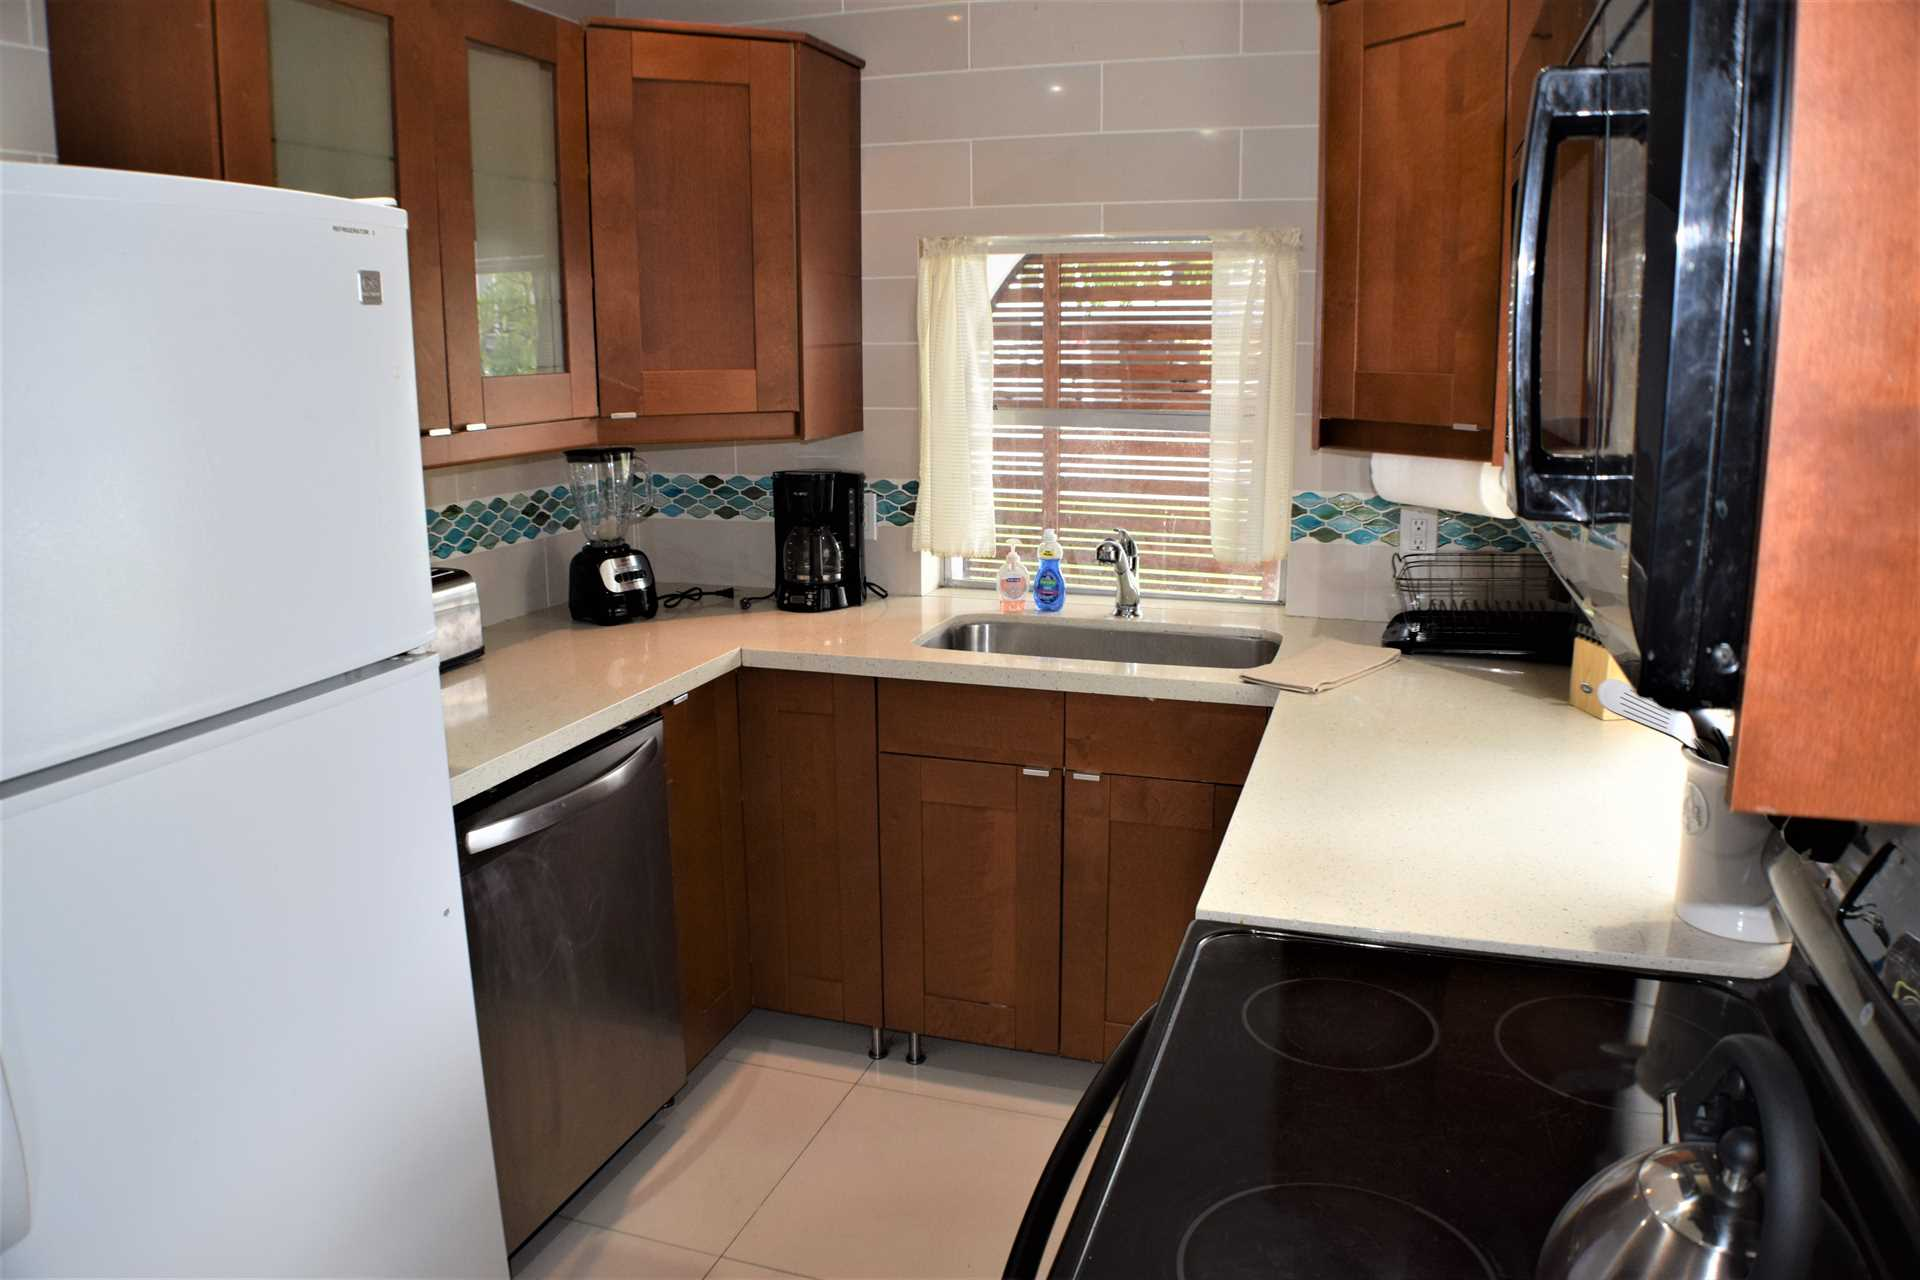 Galley kitchen features include all small appliances and a w